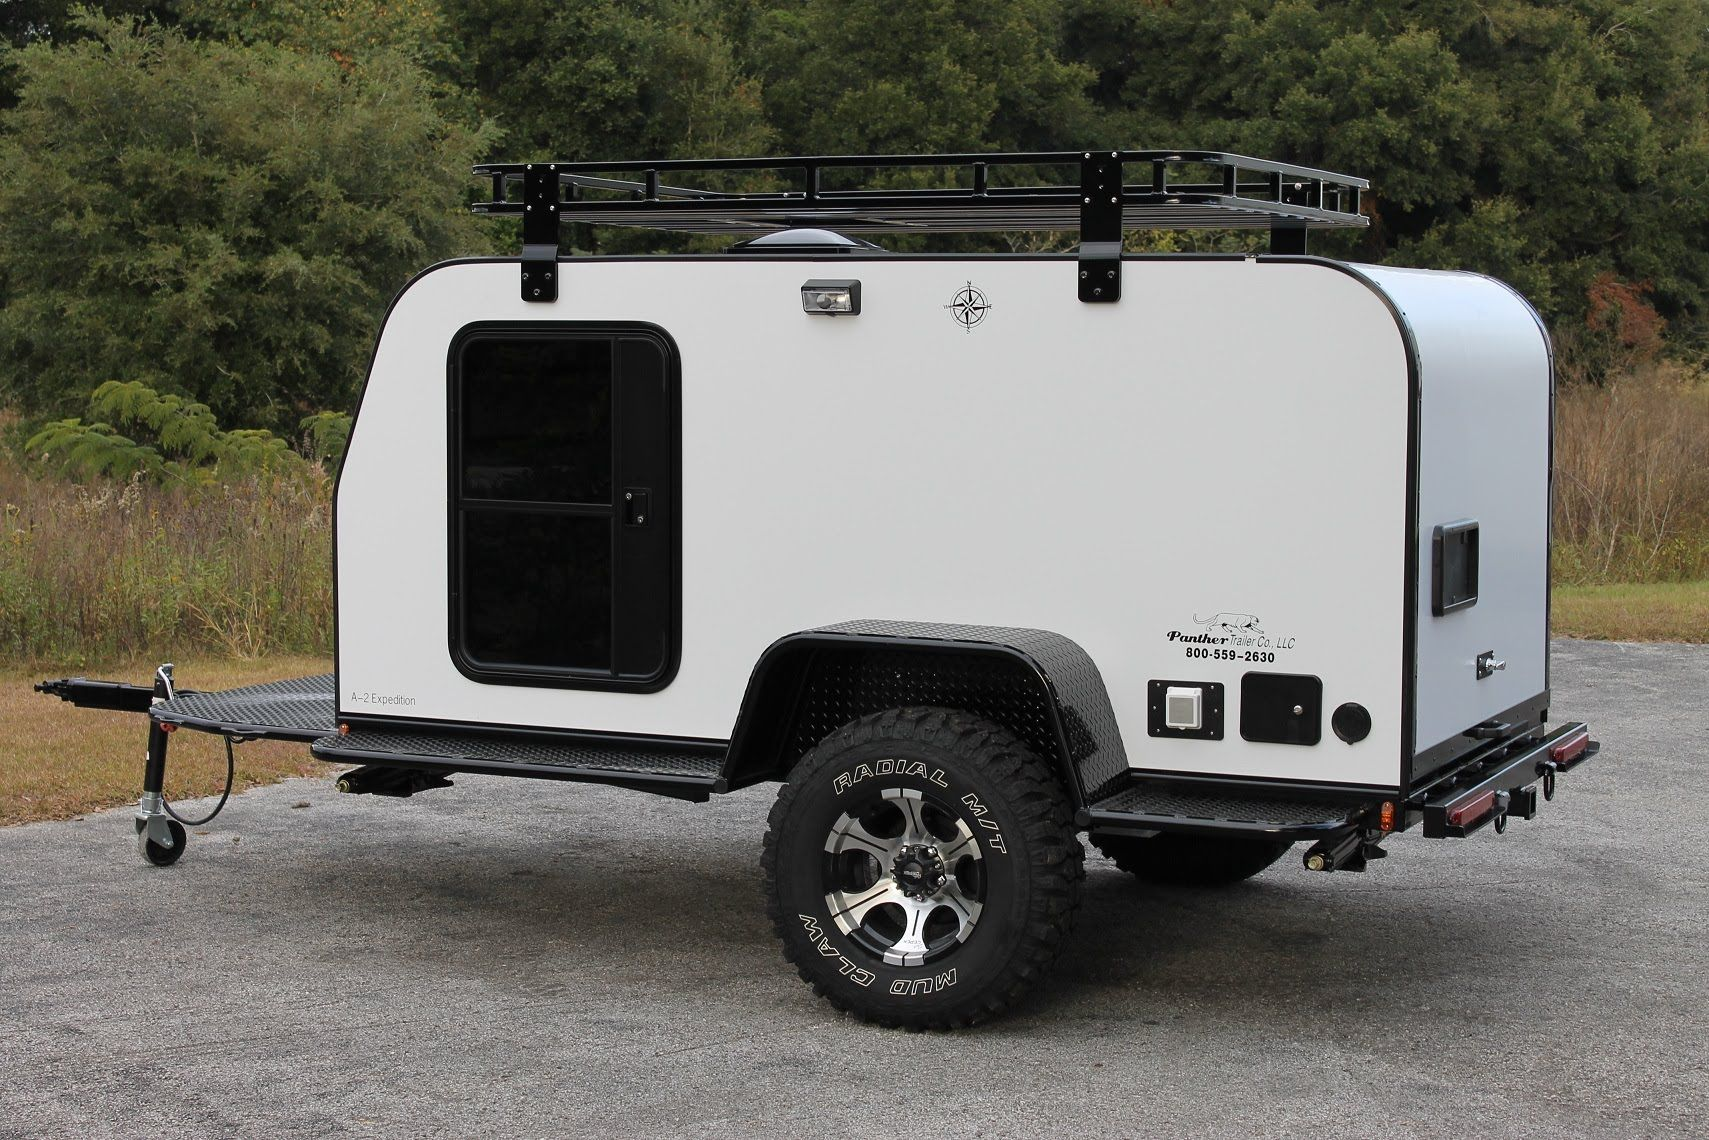 small camping trailer panther a 2 expedition trailer 5x10 - Small Camper Trailer 2